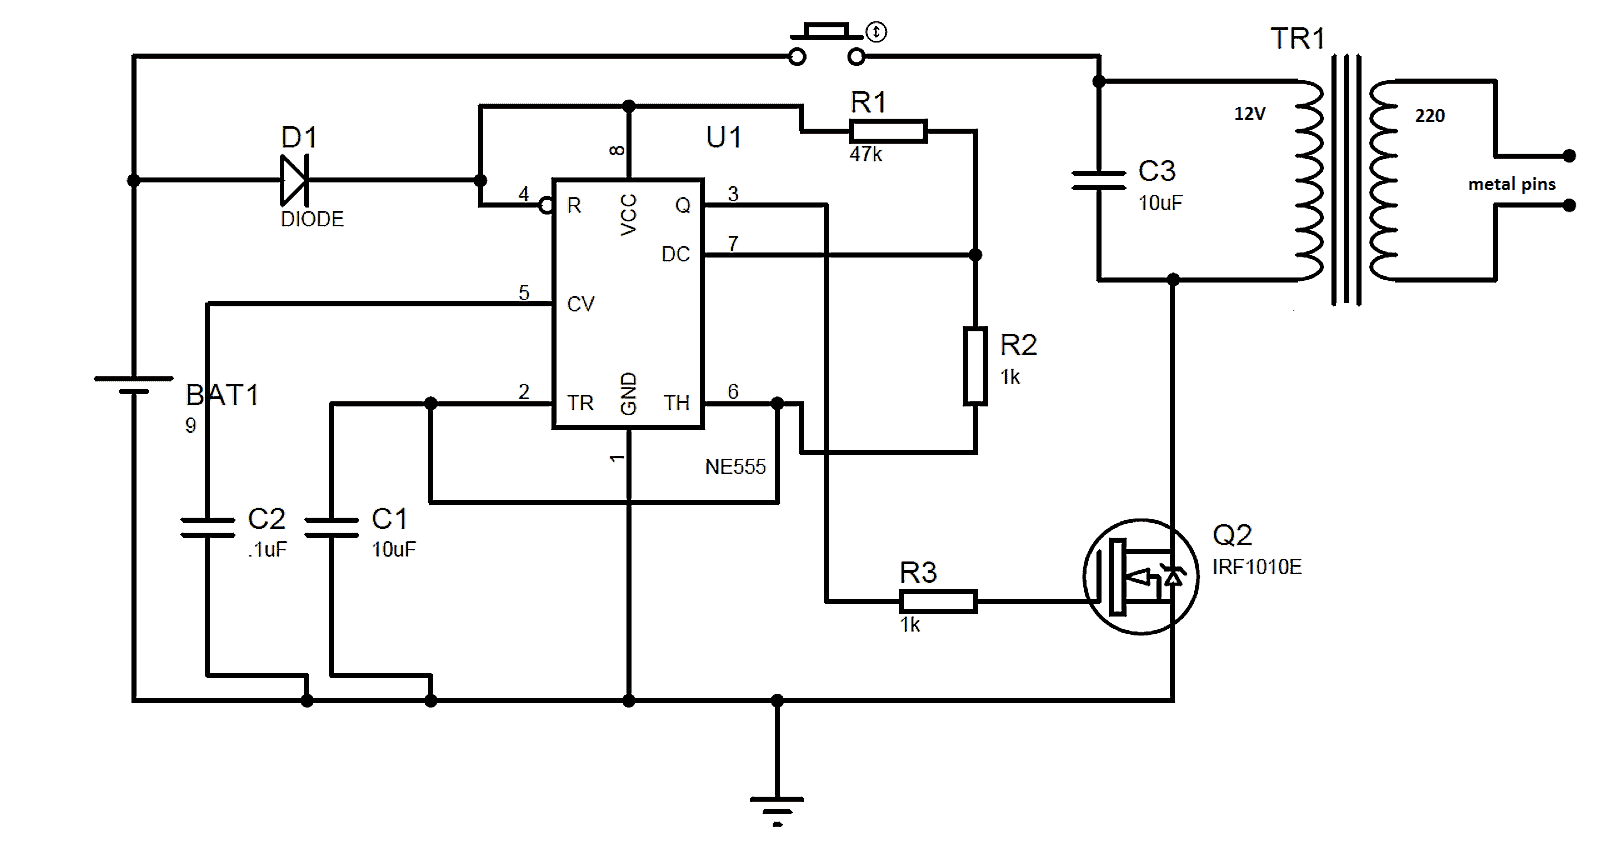 taser circuit diagram honda accord radio wiring gun using 555 ic engineer experiences